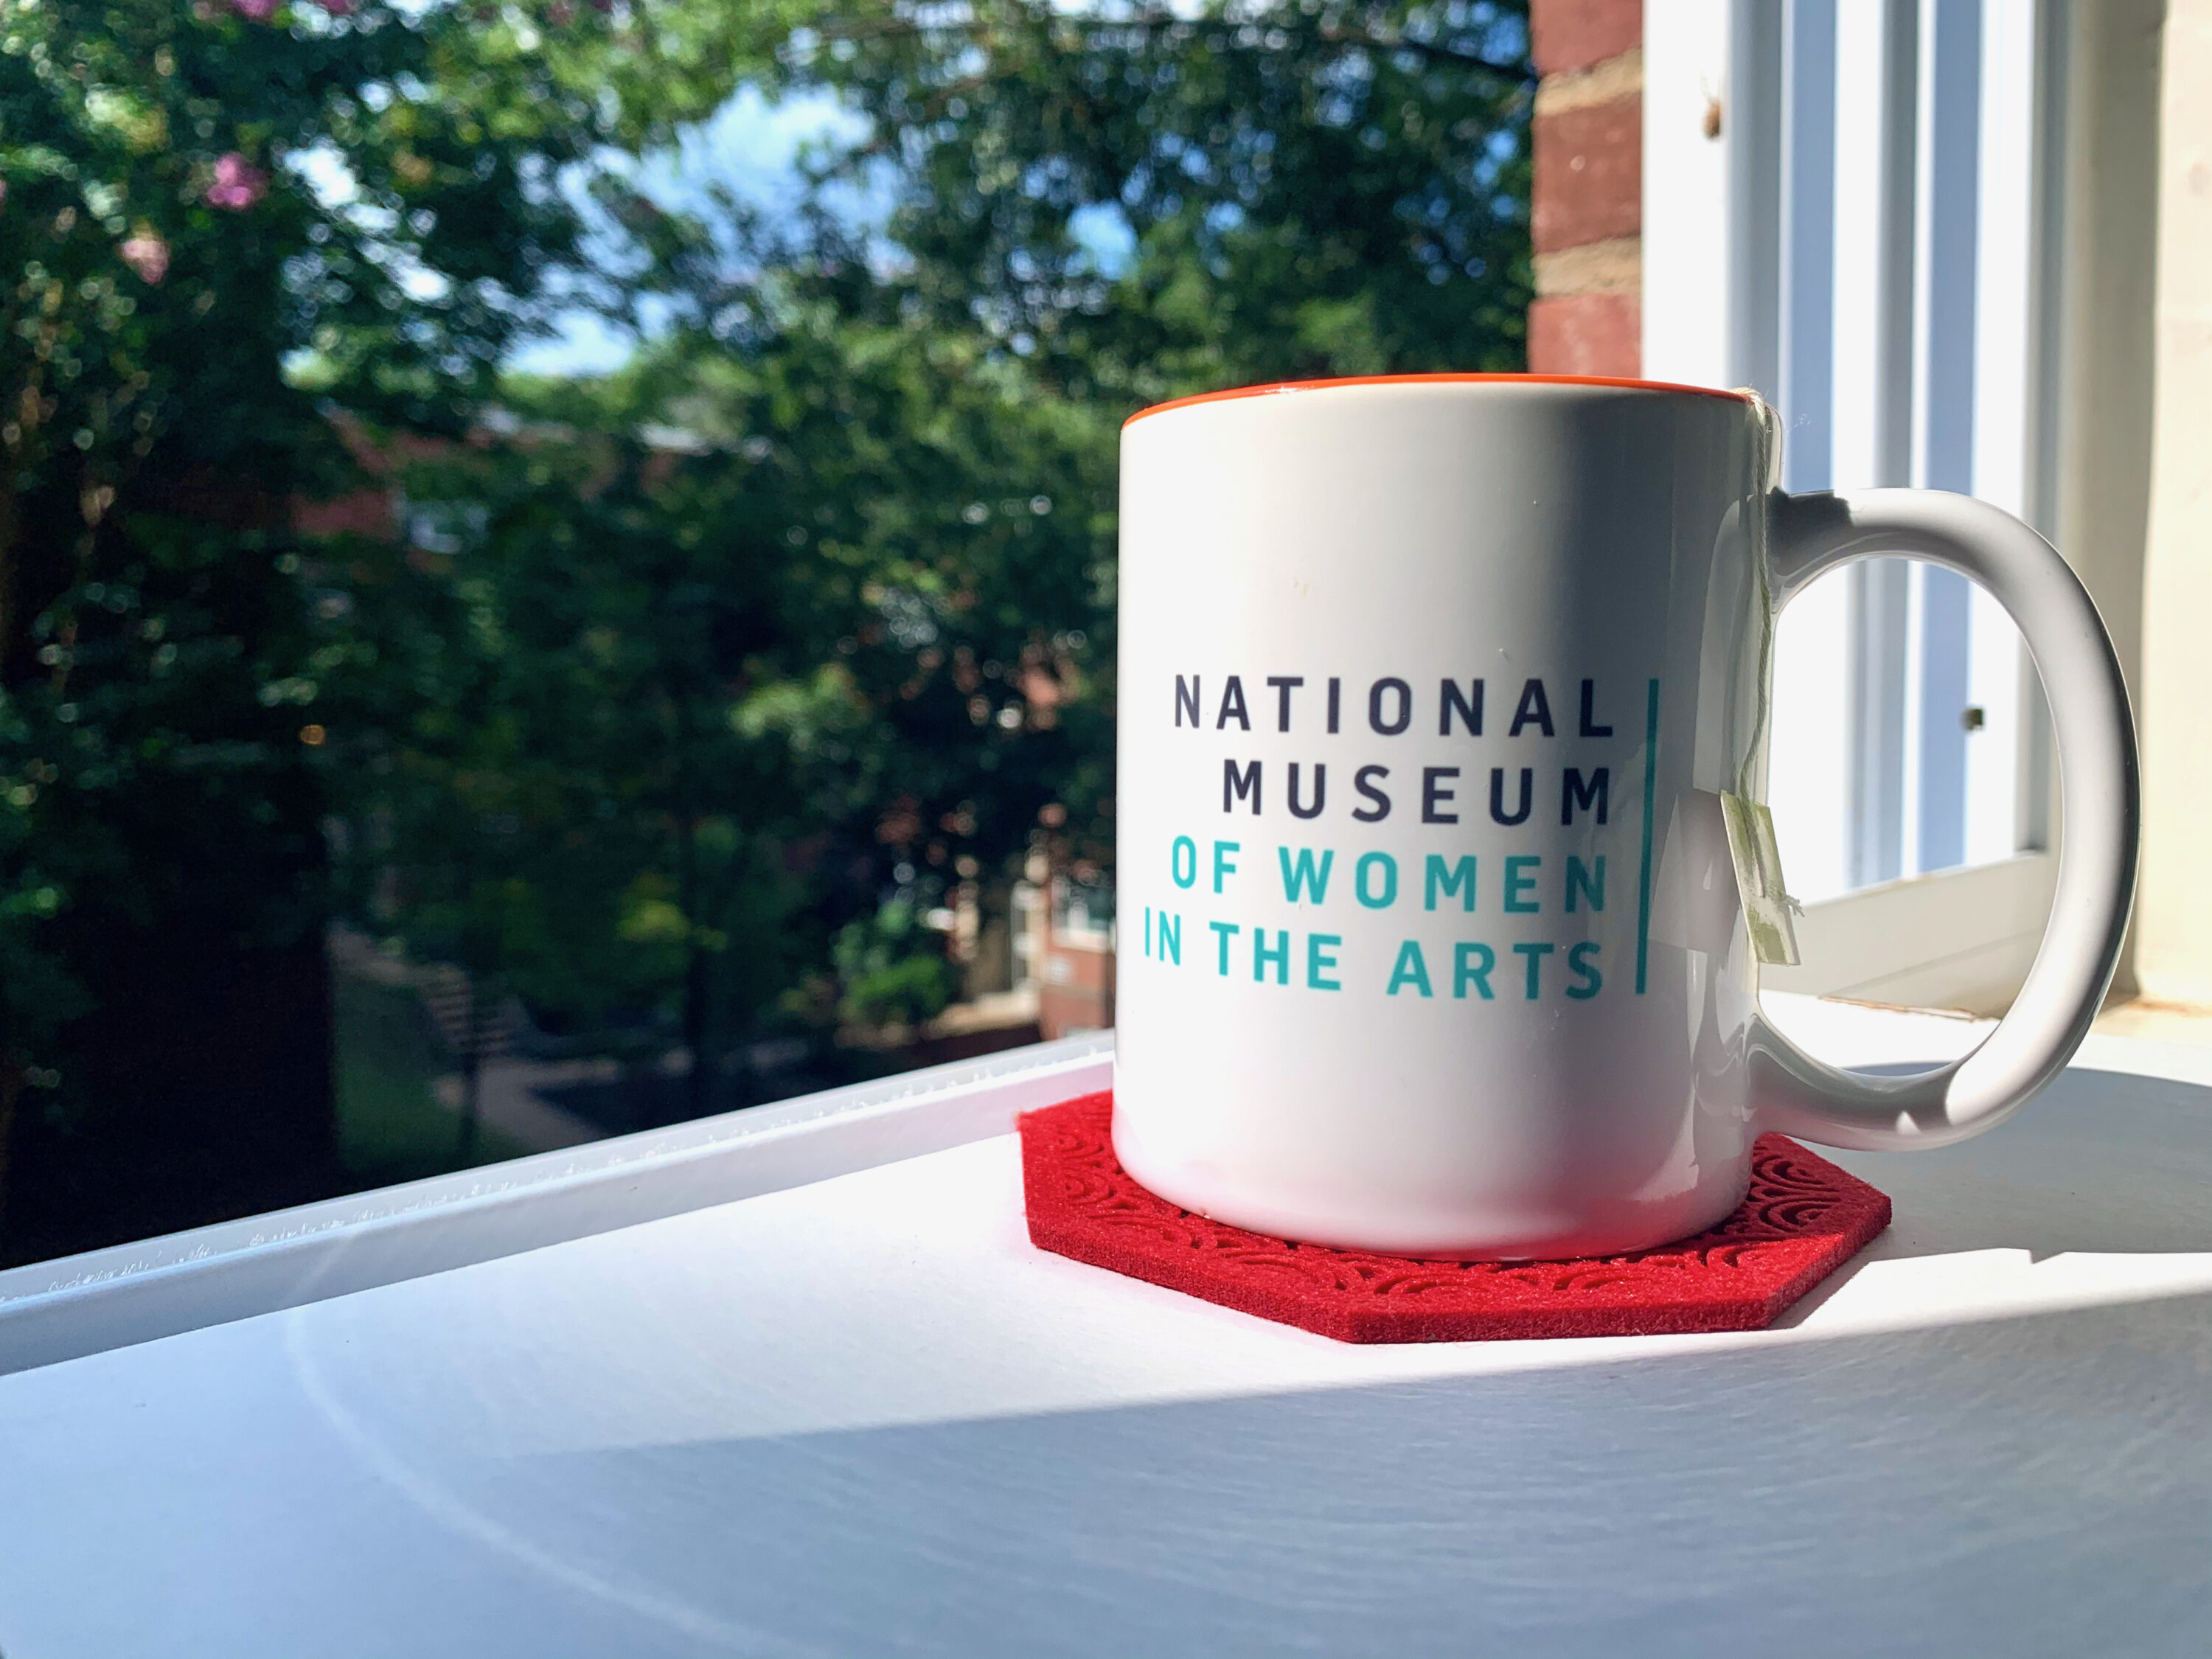 A white mug with National Museum of Women in the Arts printed on it in gray and green text, sitting on a red coaster on a white surface. Behind the mug is an open window showcasing green foliage.